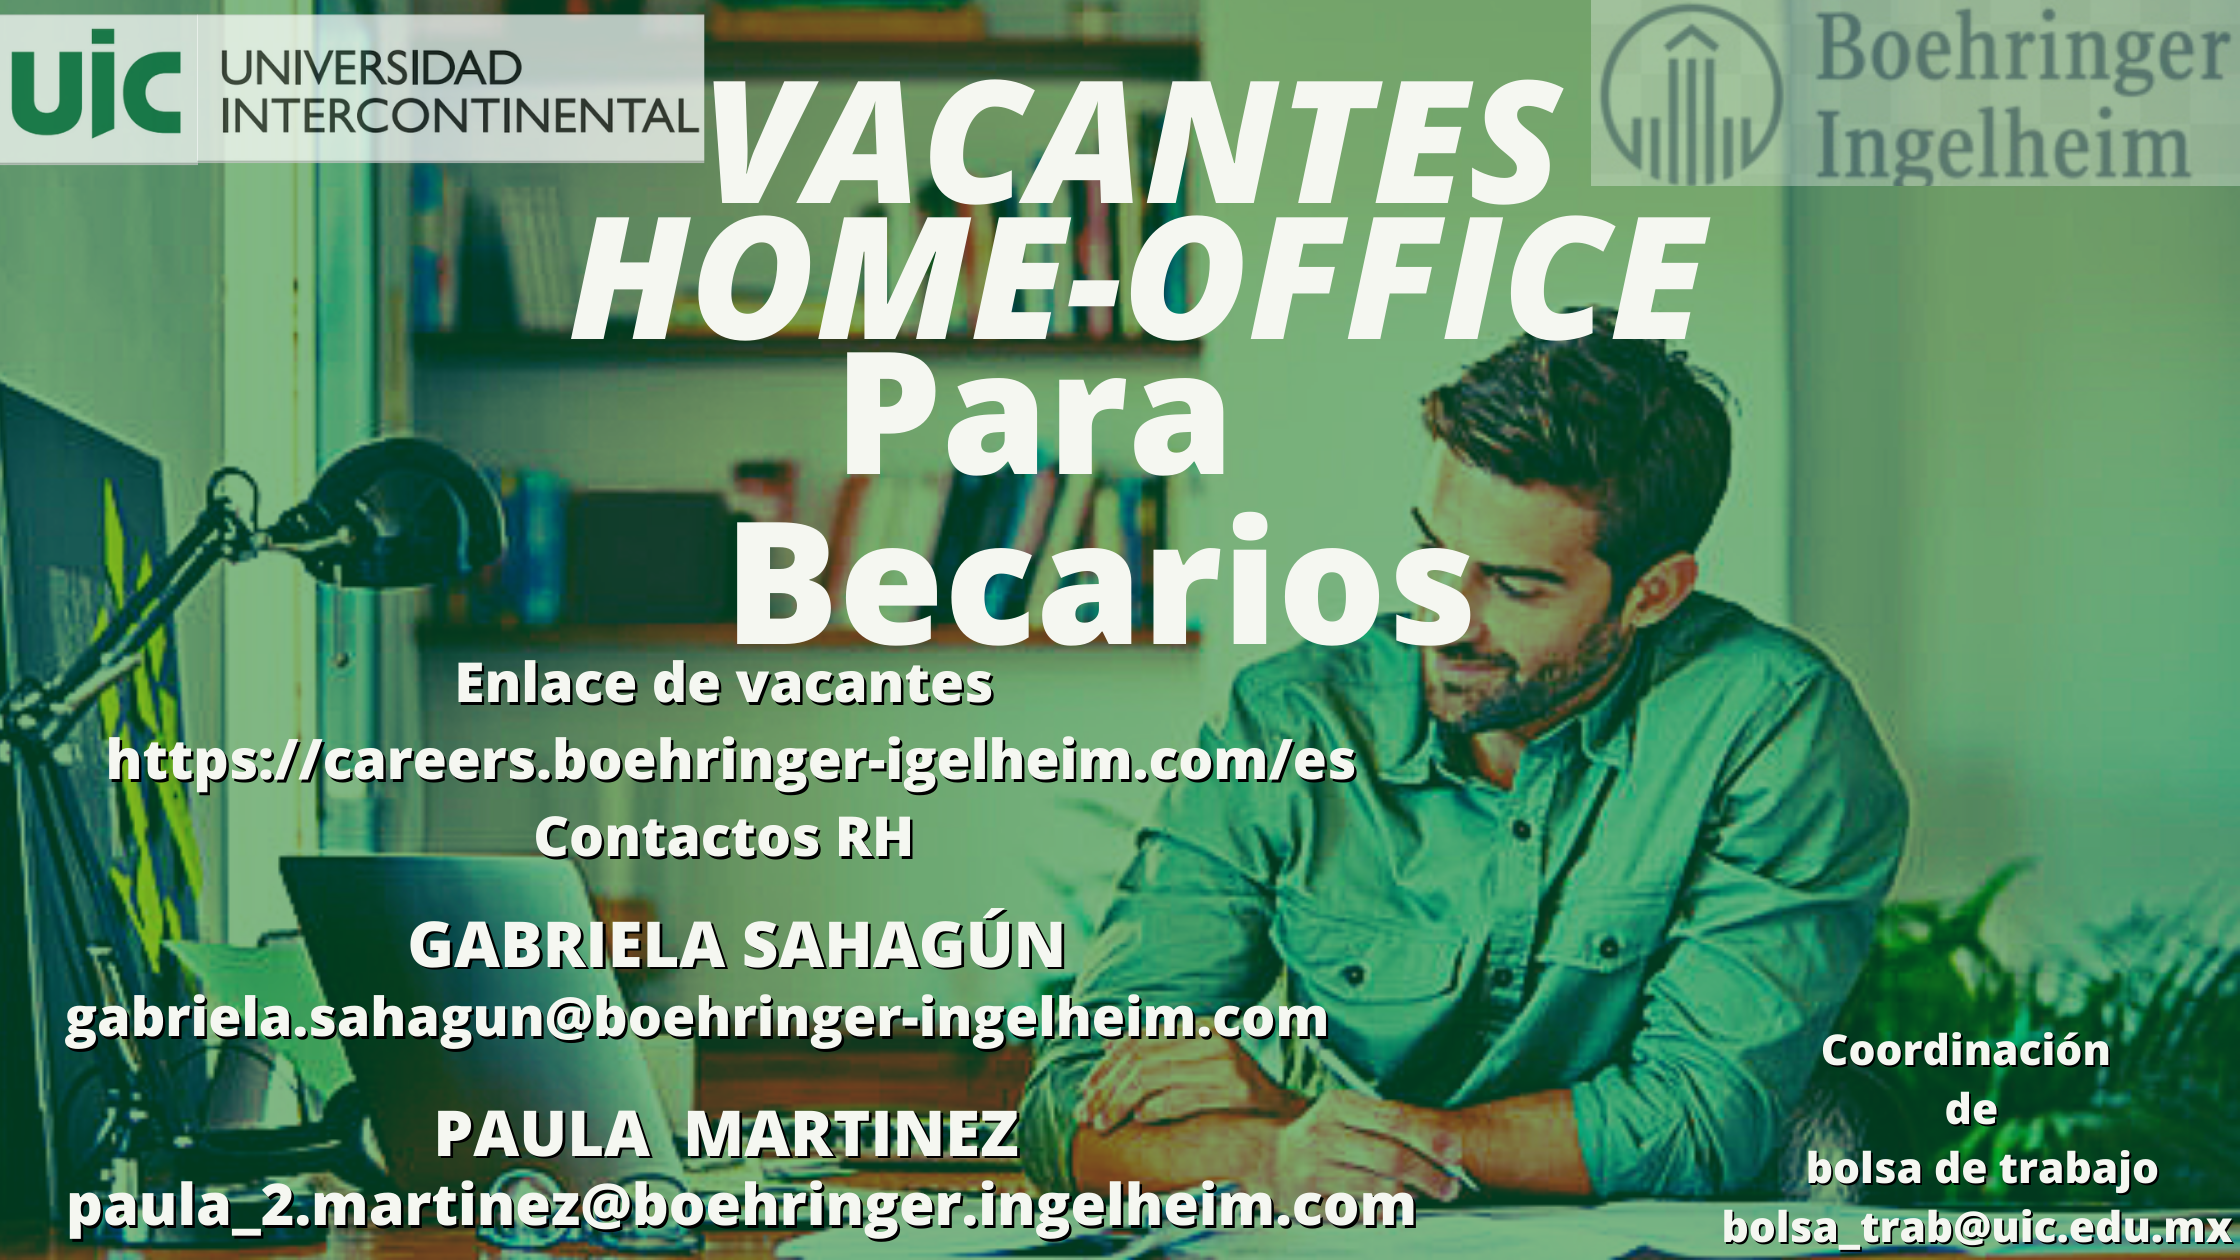 Vacante home office